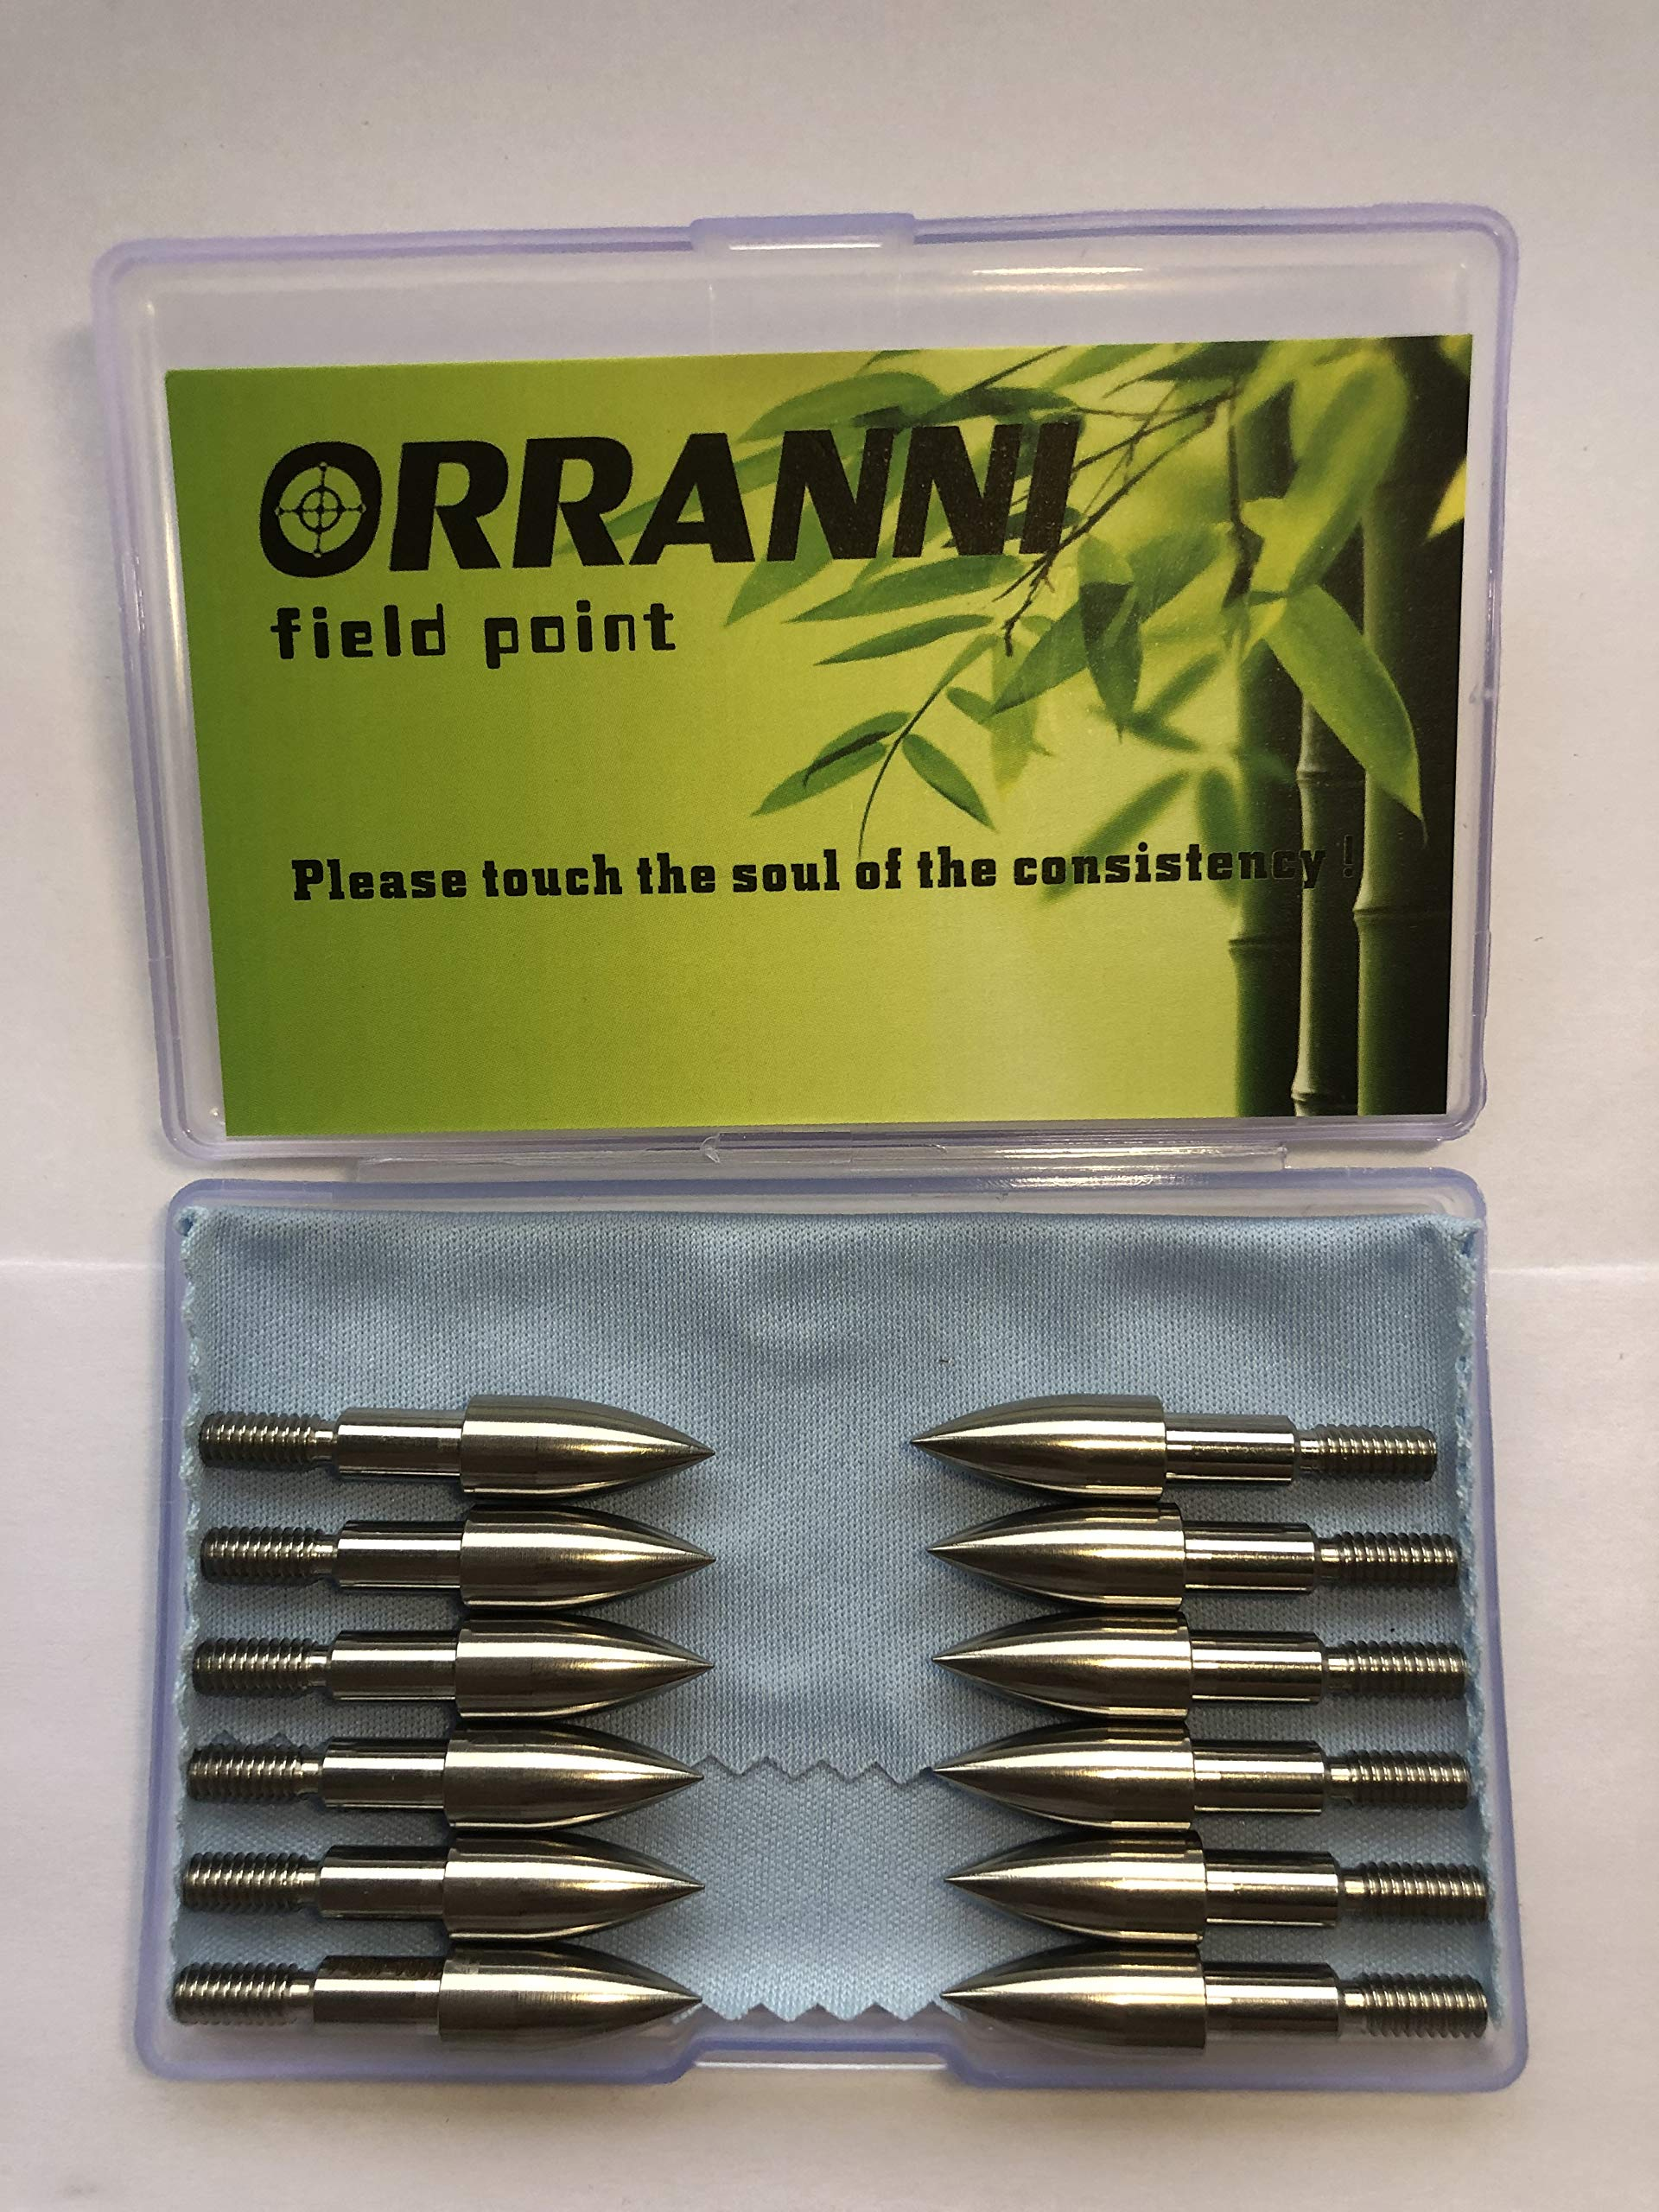 ORRANNI Archery Field Points,19/64'' Outside Diameter,100 Grains,Stainless Steel 8-32 UNC Screw in Archery Field Tips(1 Dozen) by ORRANNI